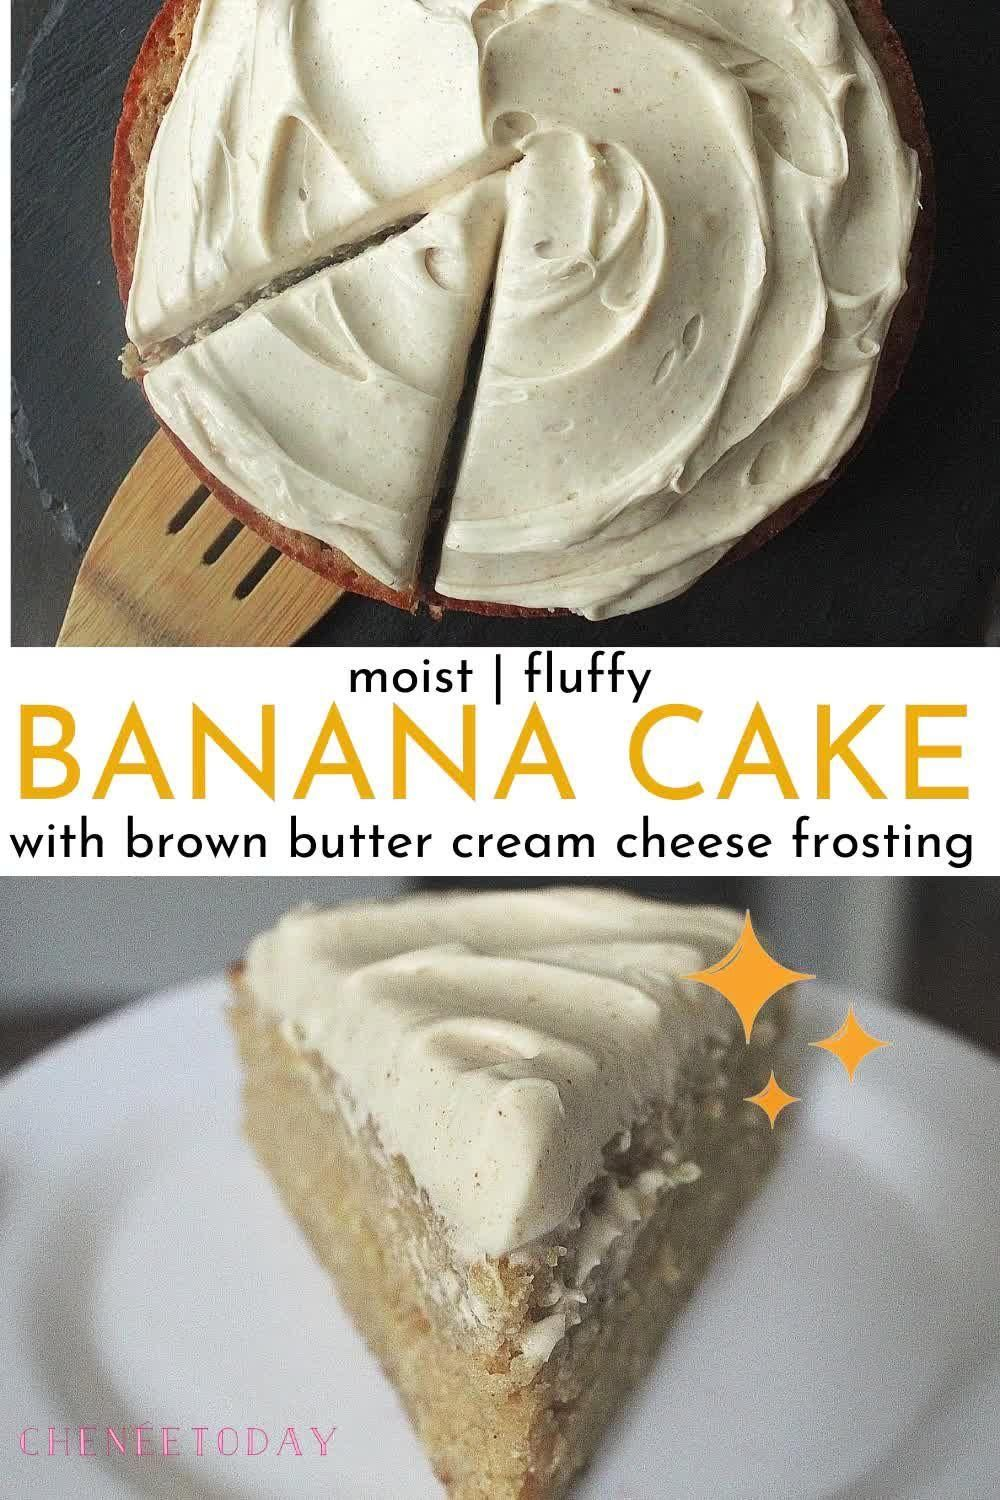 Banana Cake with Brown Butter Cream Cheese Frosting | Chenée Today